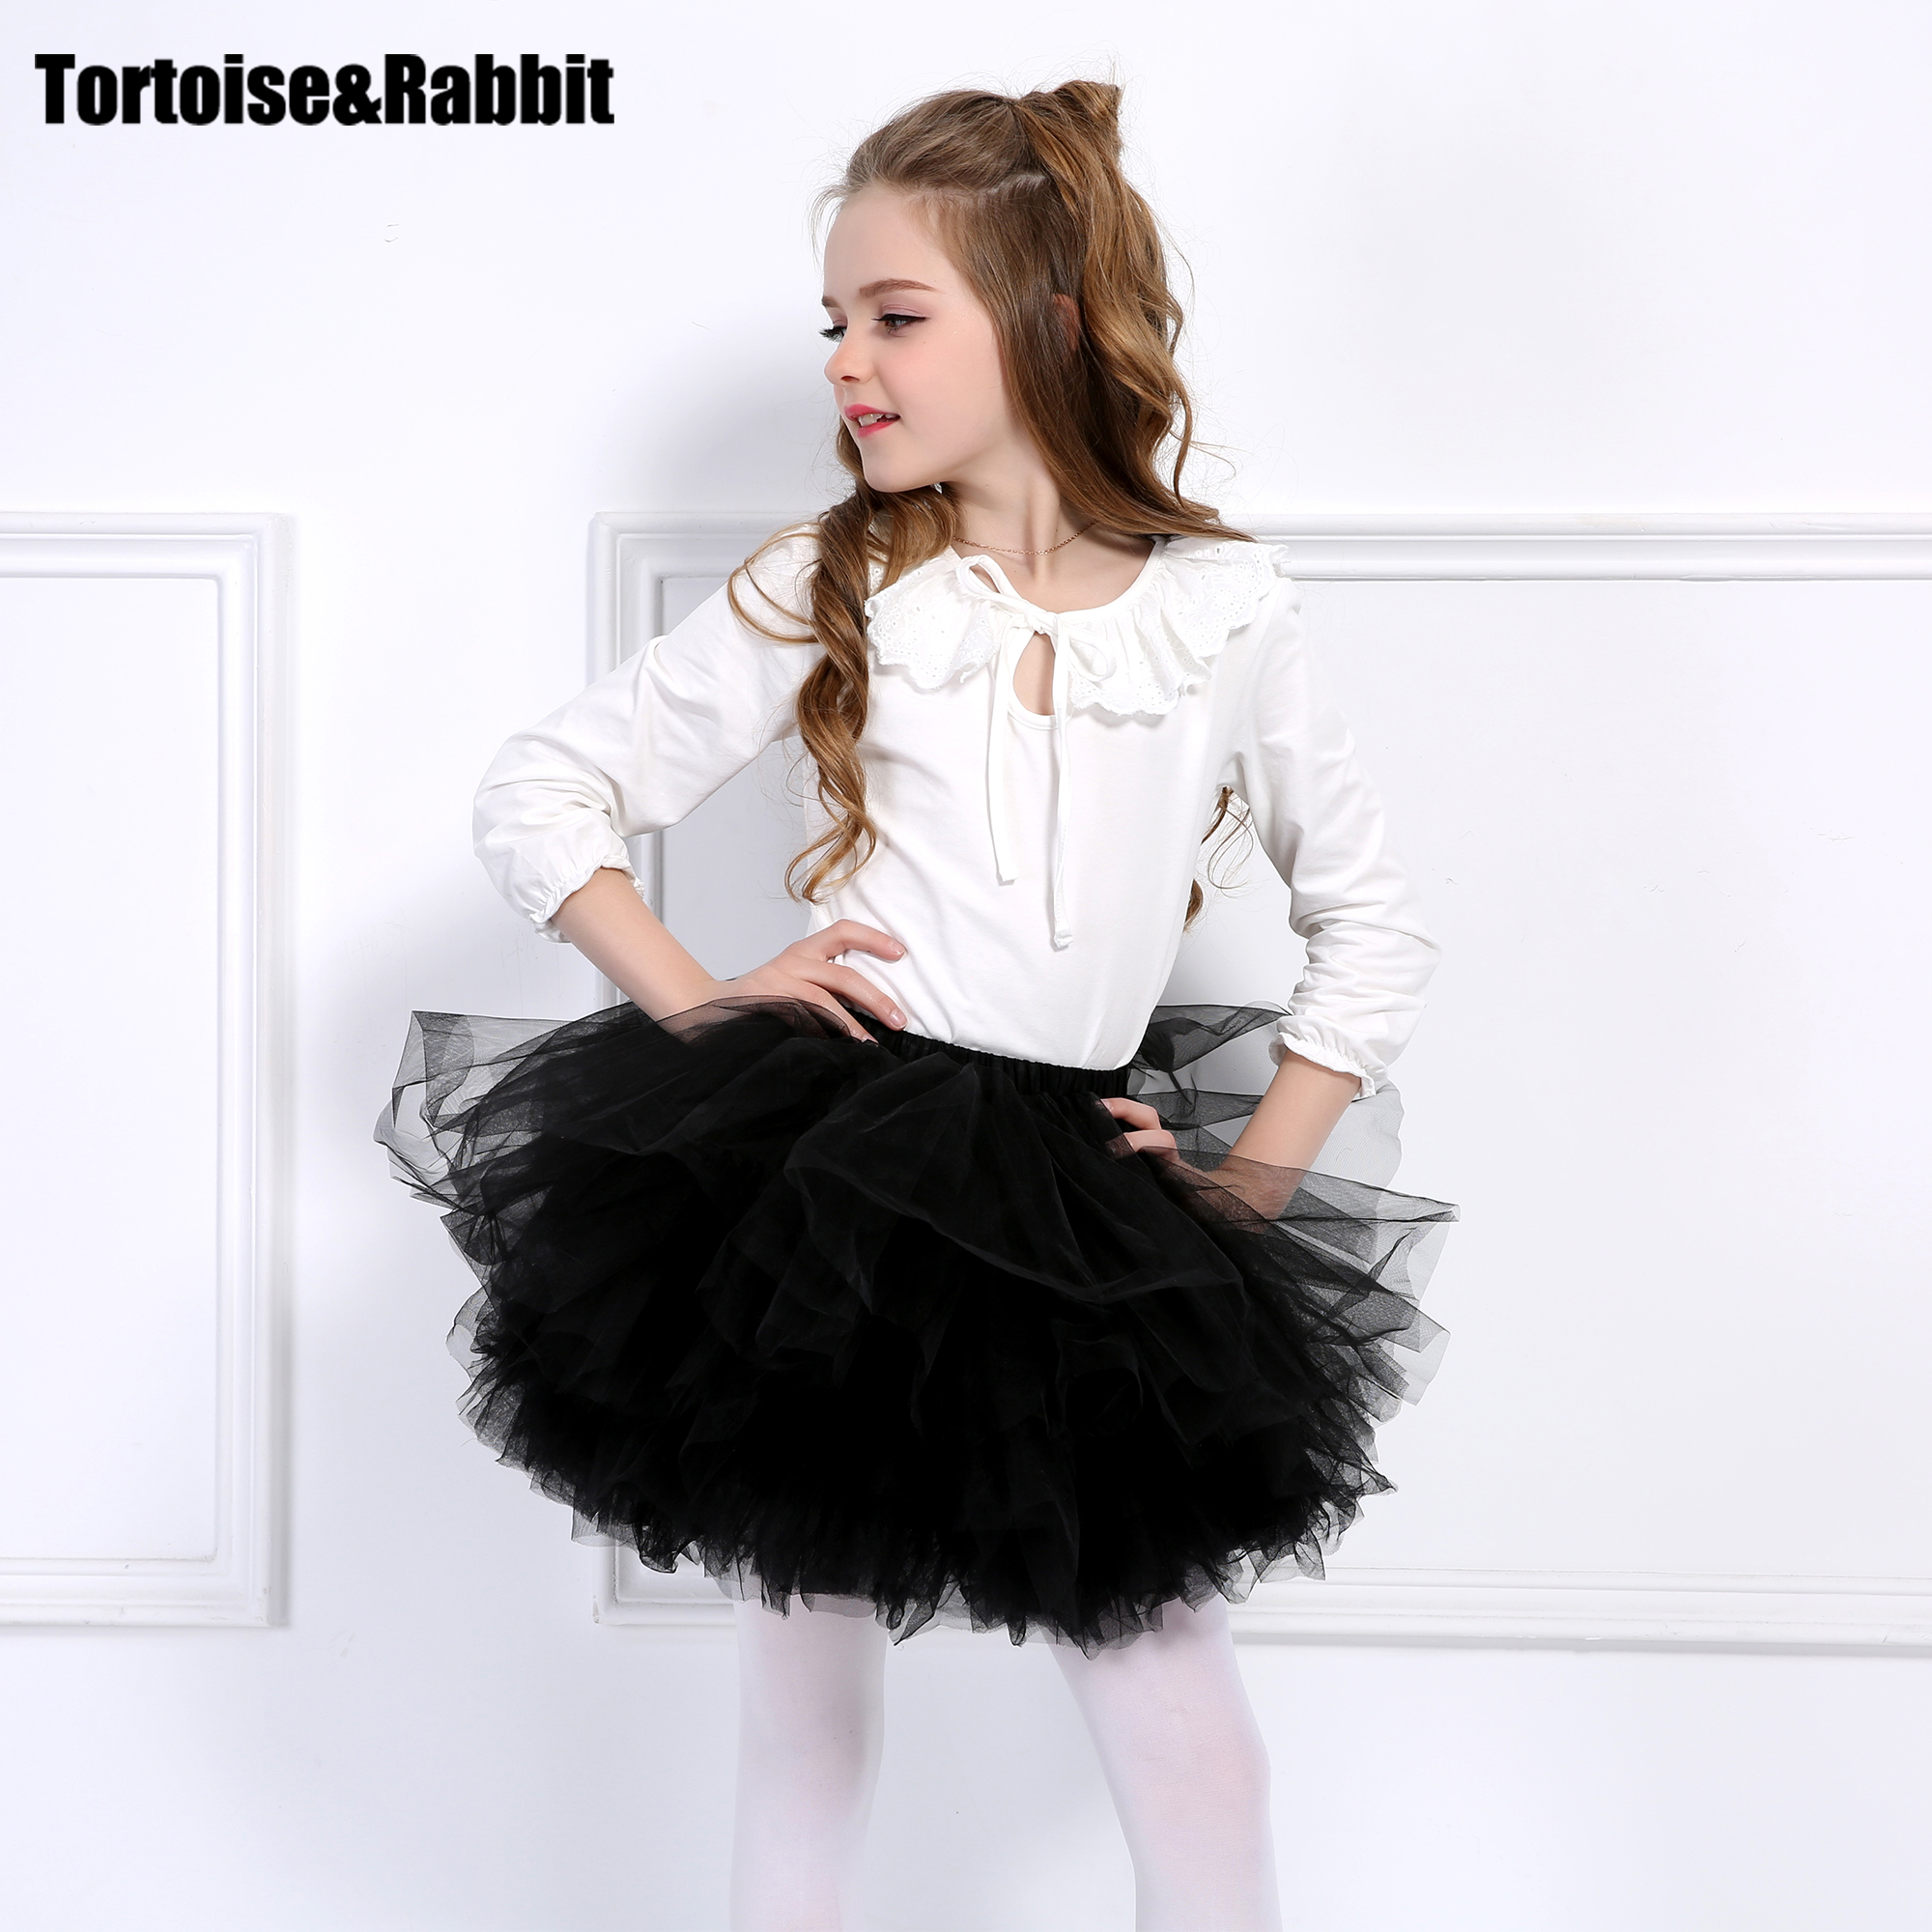 Girls 6 Layer Girl Skirt Fantastic Pettiskirt Tutu Extra Fluffy Maxi Cake Skirts Party Dance Wear Much More Fluffy Than Picture